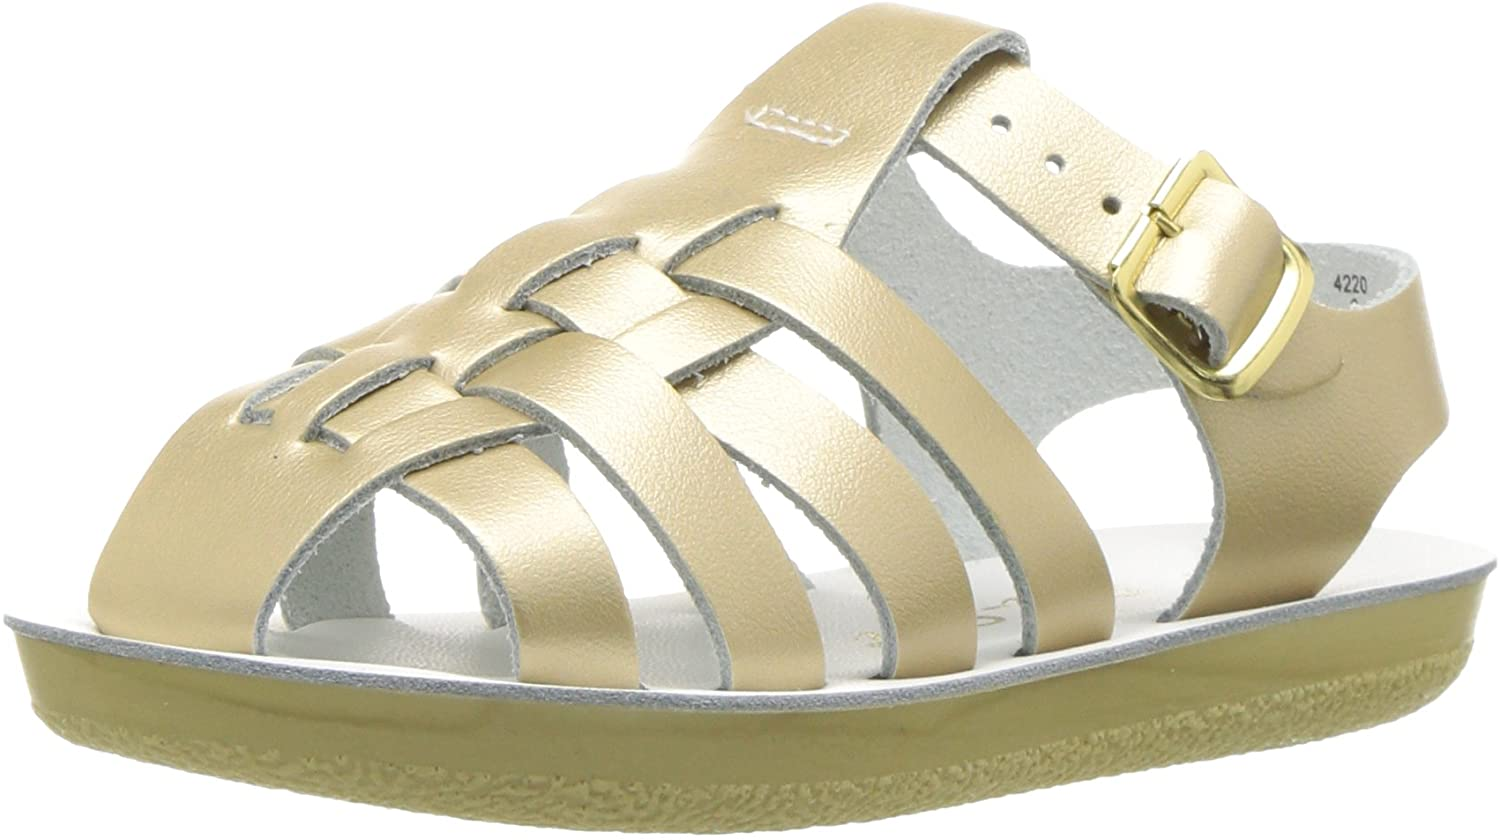 Salt Water Some reservation Award Sandals by Hoy Shoes Girl's Sun-San Baby Sailors I -